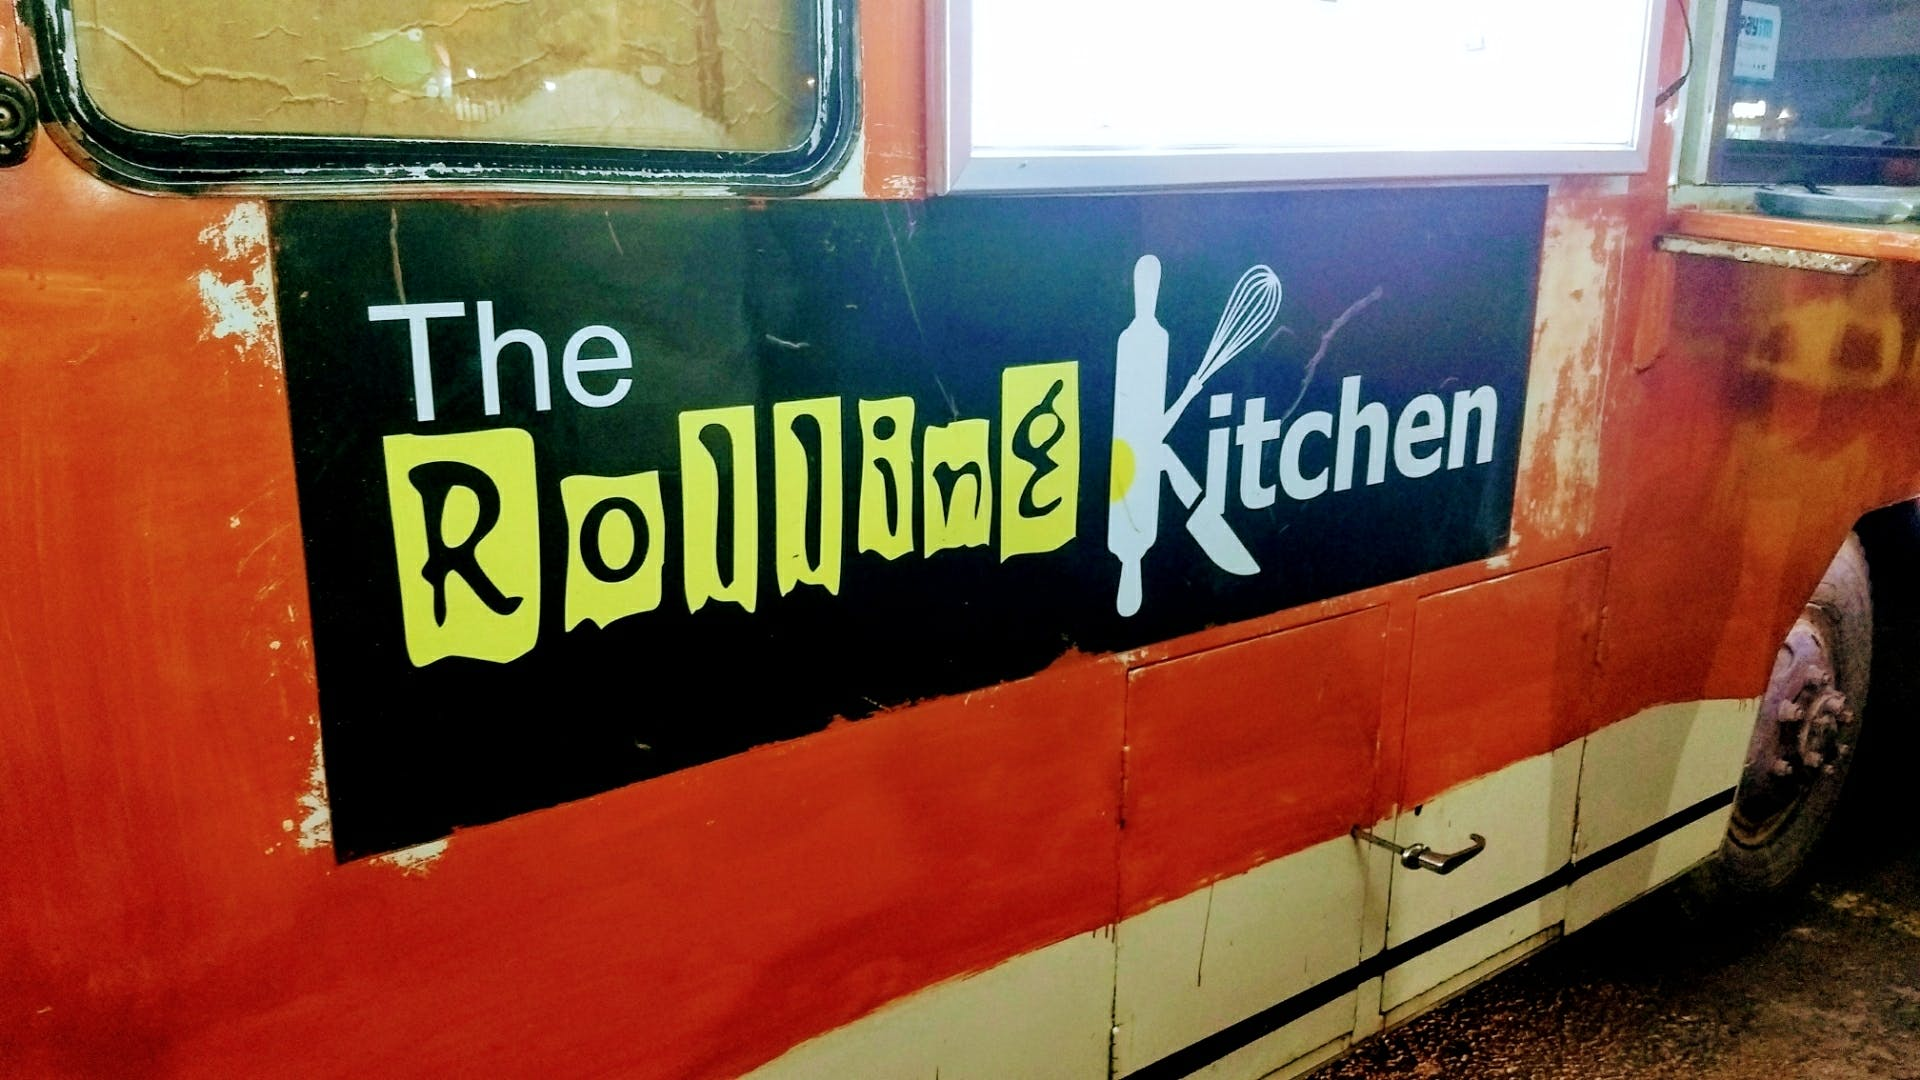 image - The Rolling Kitchen